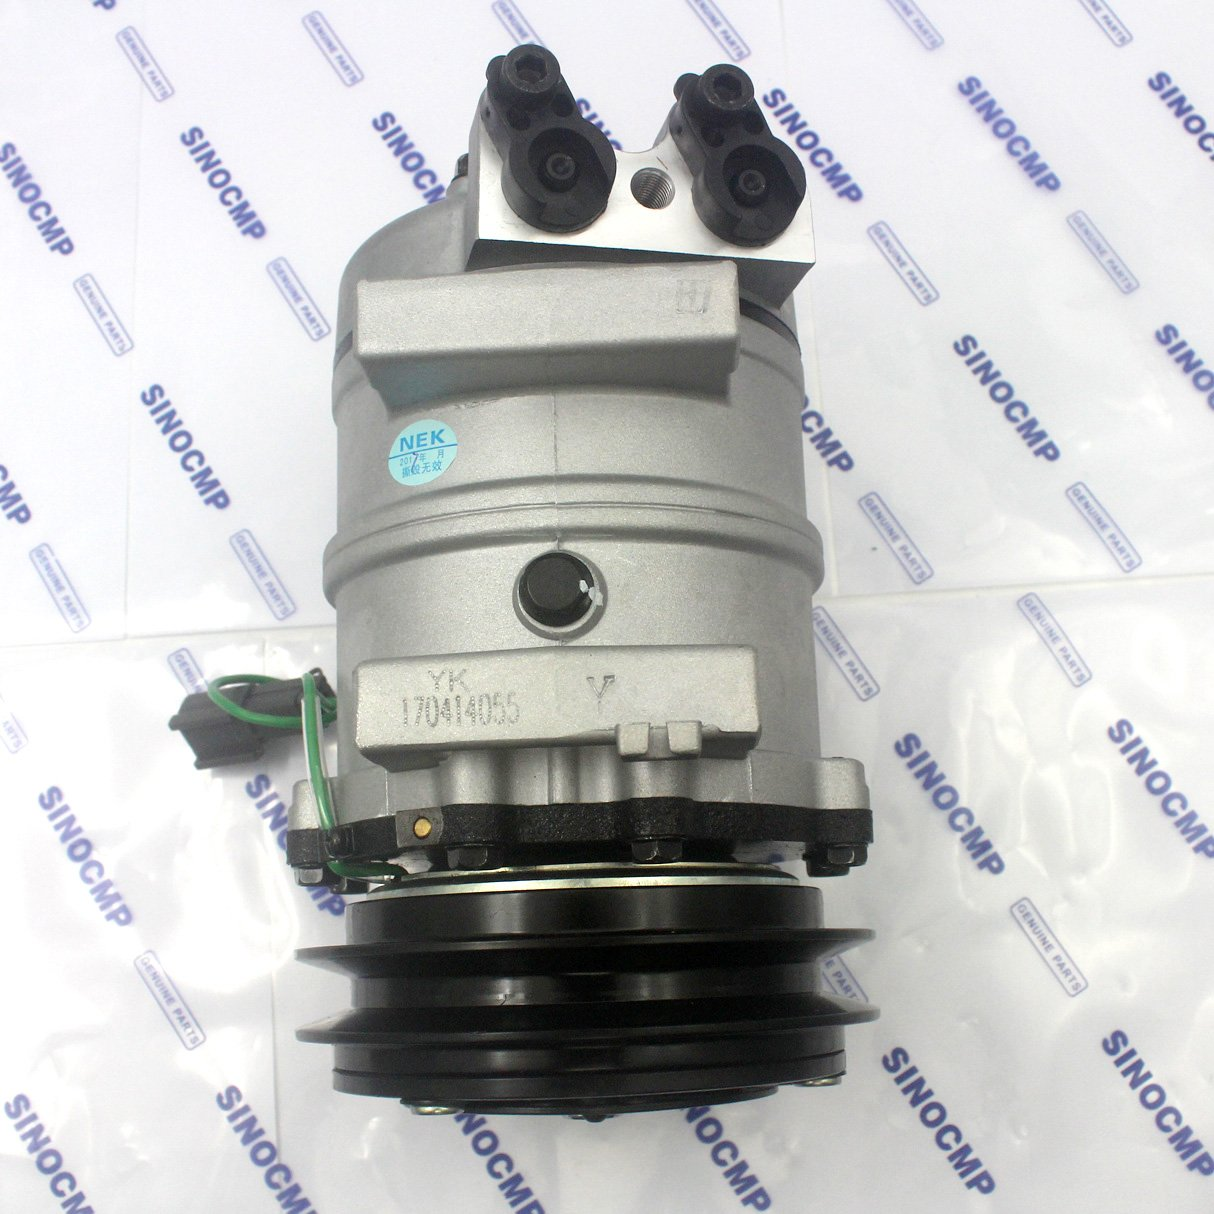 Amazon.com: 4425700 4456130 Air Conditioning Compressor - SINOCMP Excavator Air Conditioning Compressor Group Refrigerant for Hitachi ZX-1 ZX60 ZX200 ZX240 ...